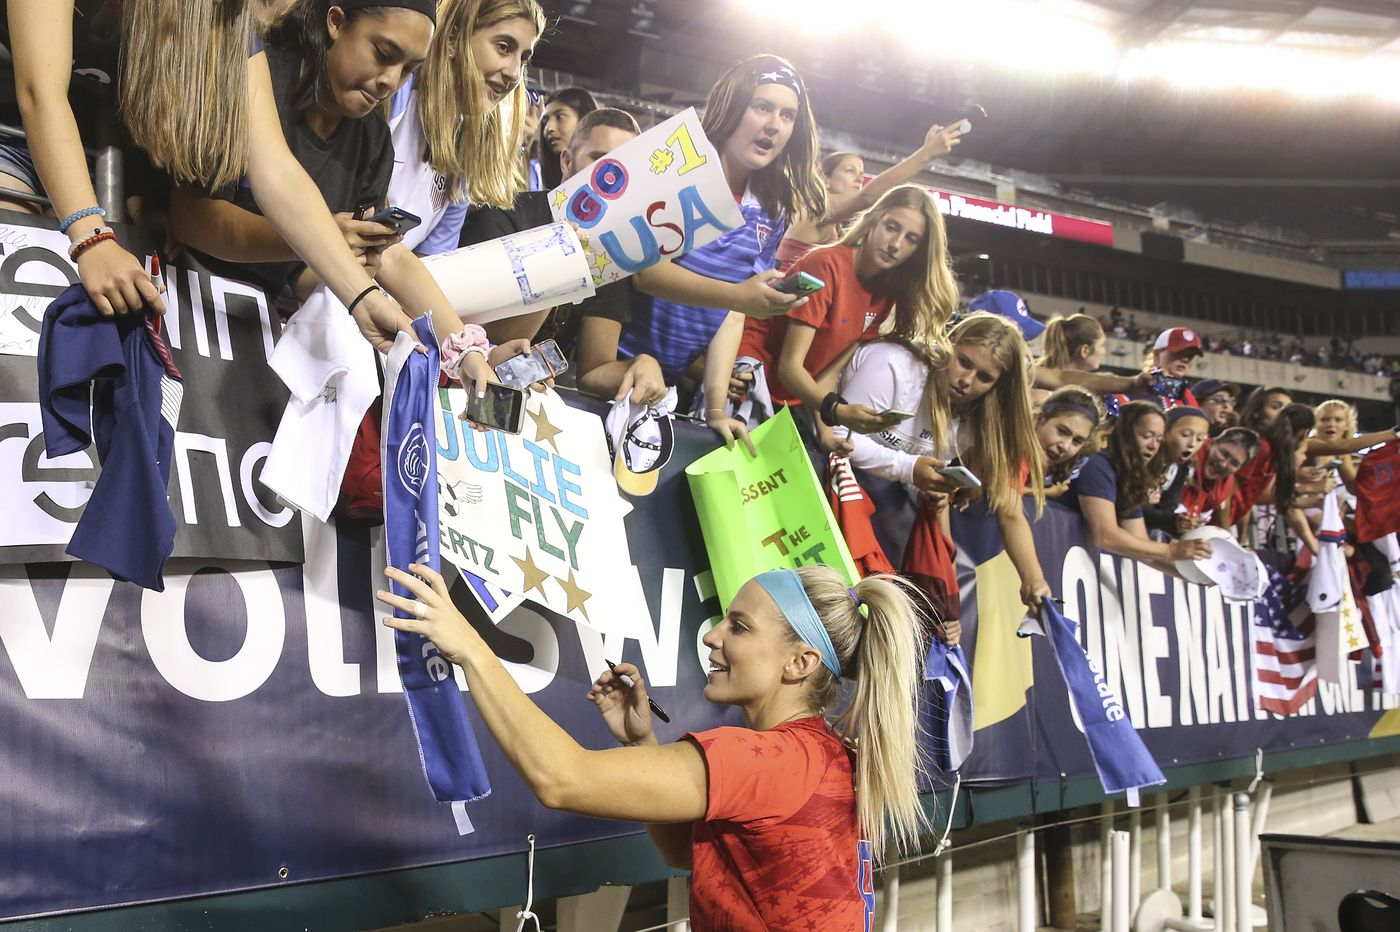 Julie Ertz wins U.S. Soccer women's player of the year award for second time